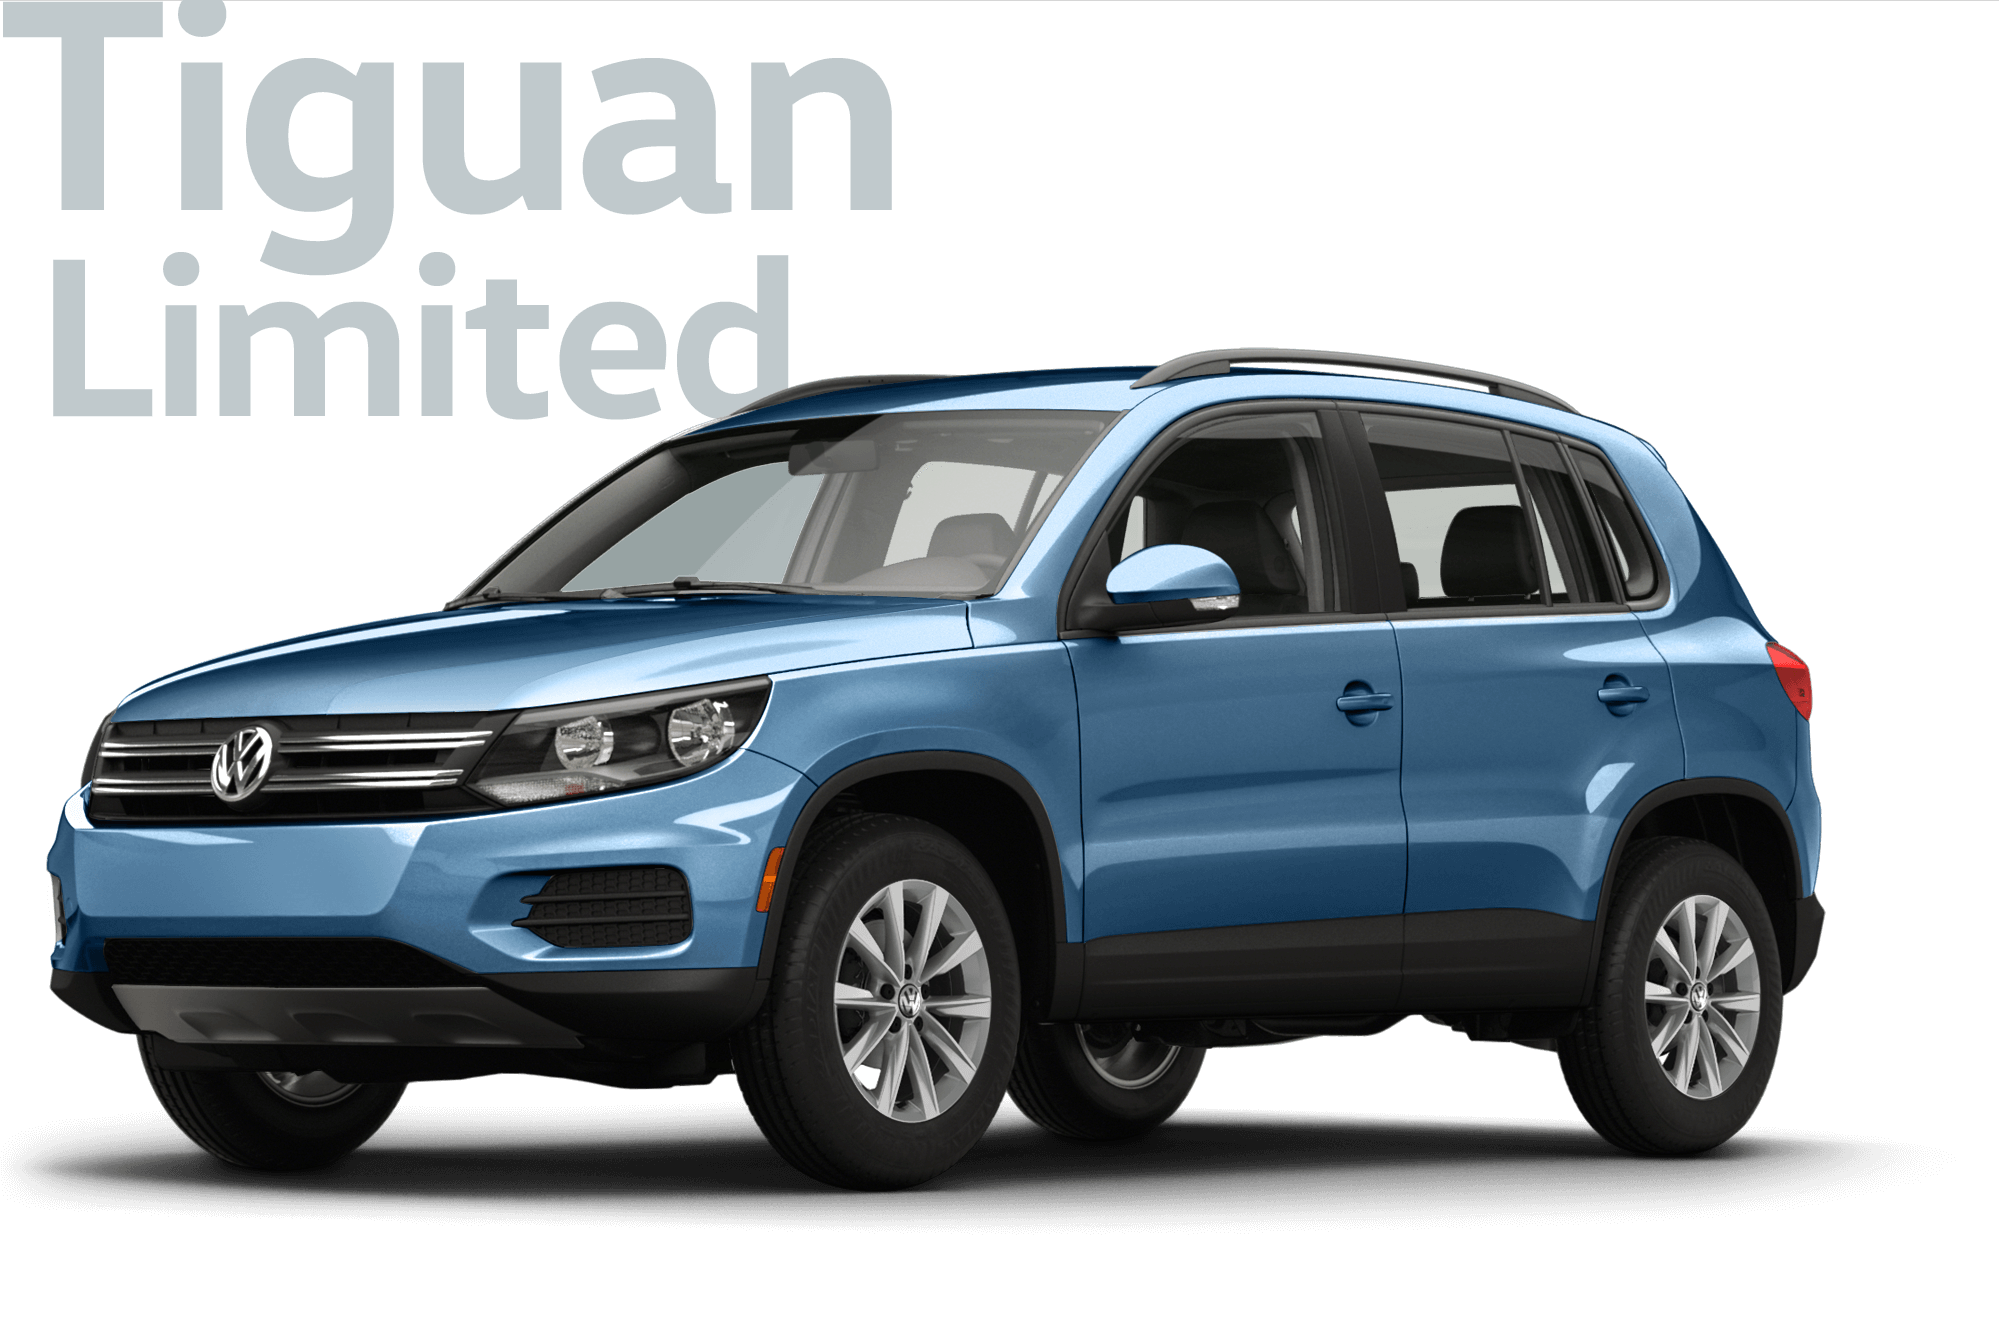 New Volkswagen Tiguan SUV lease offers in Delray Beach